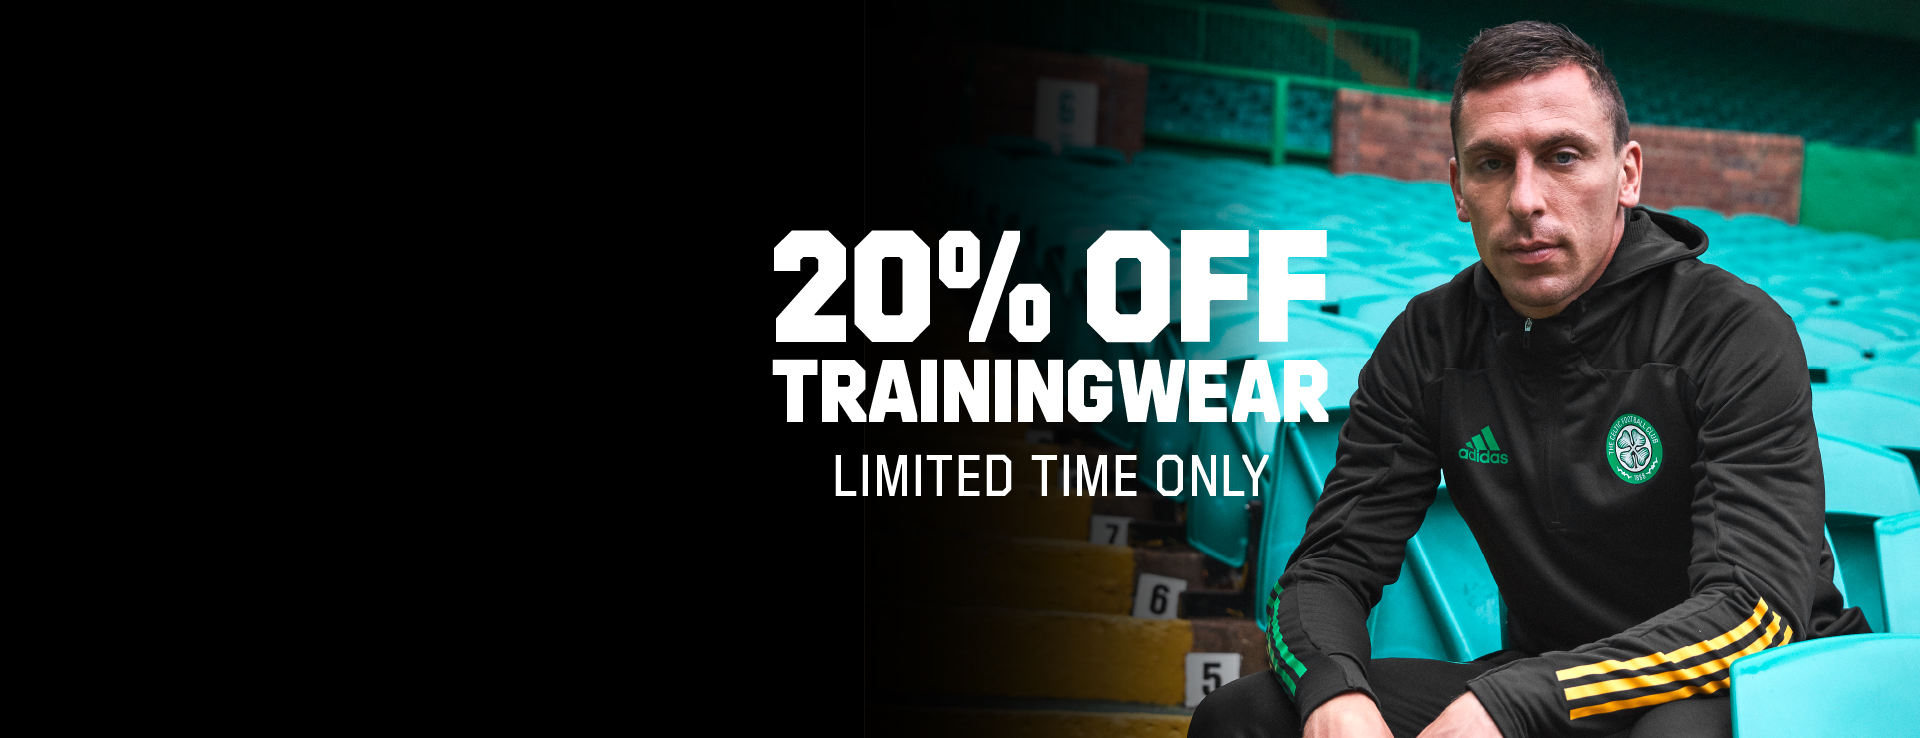 20% off Trainingwear